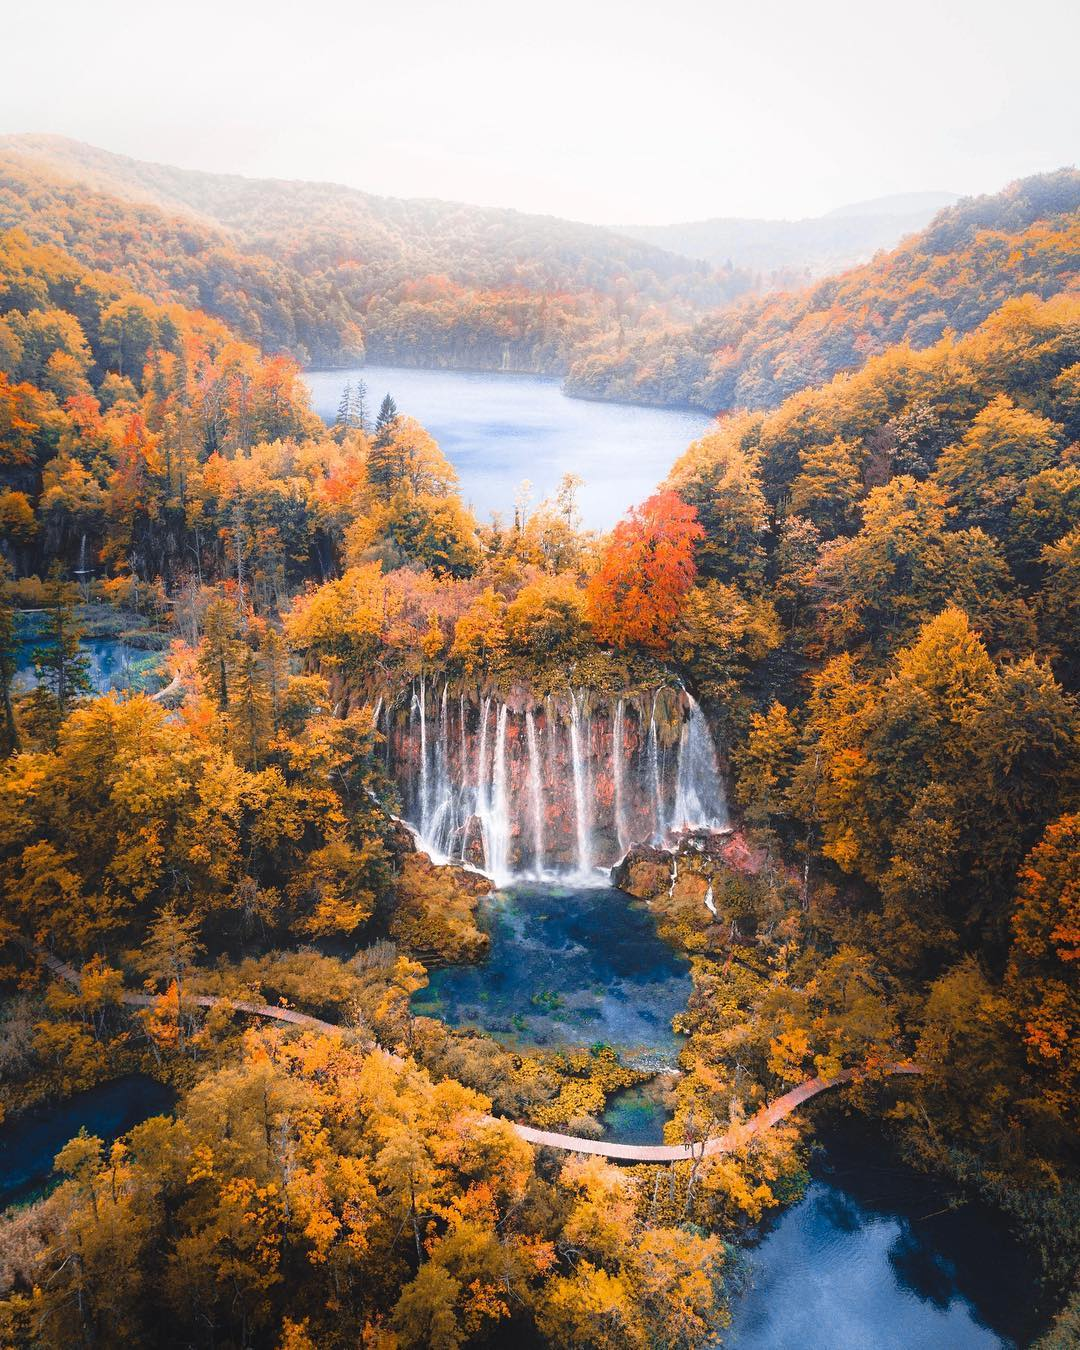 Fall colors surrounding a waterfall and lakes in Croatia